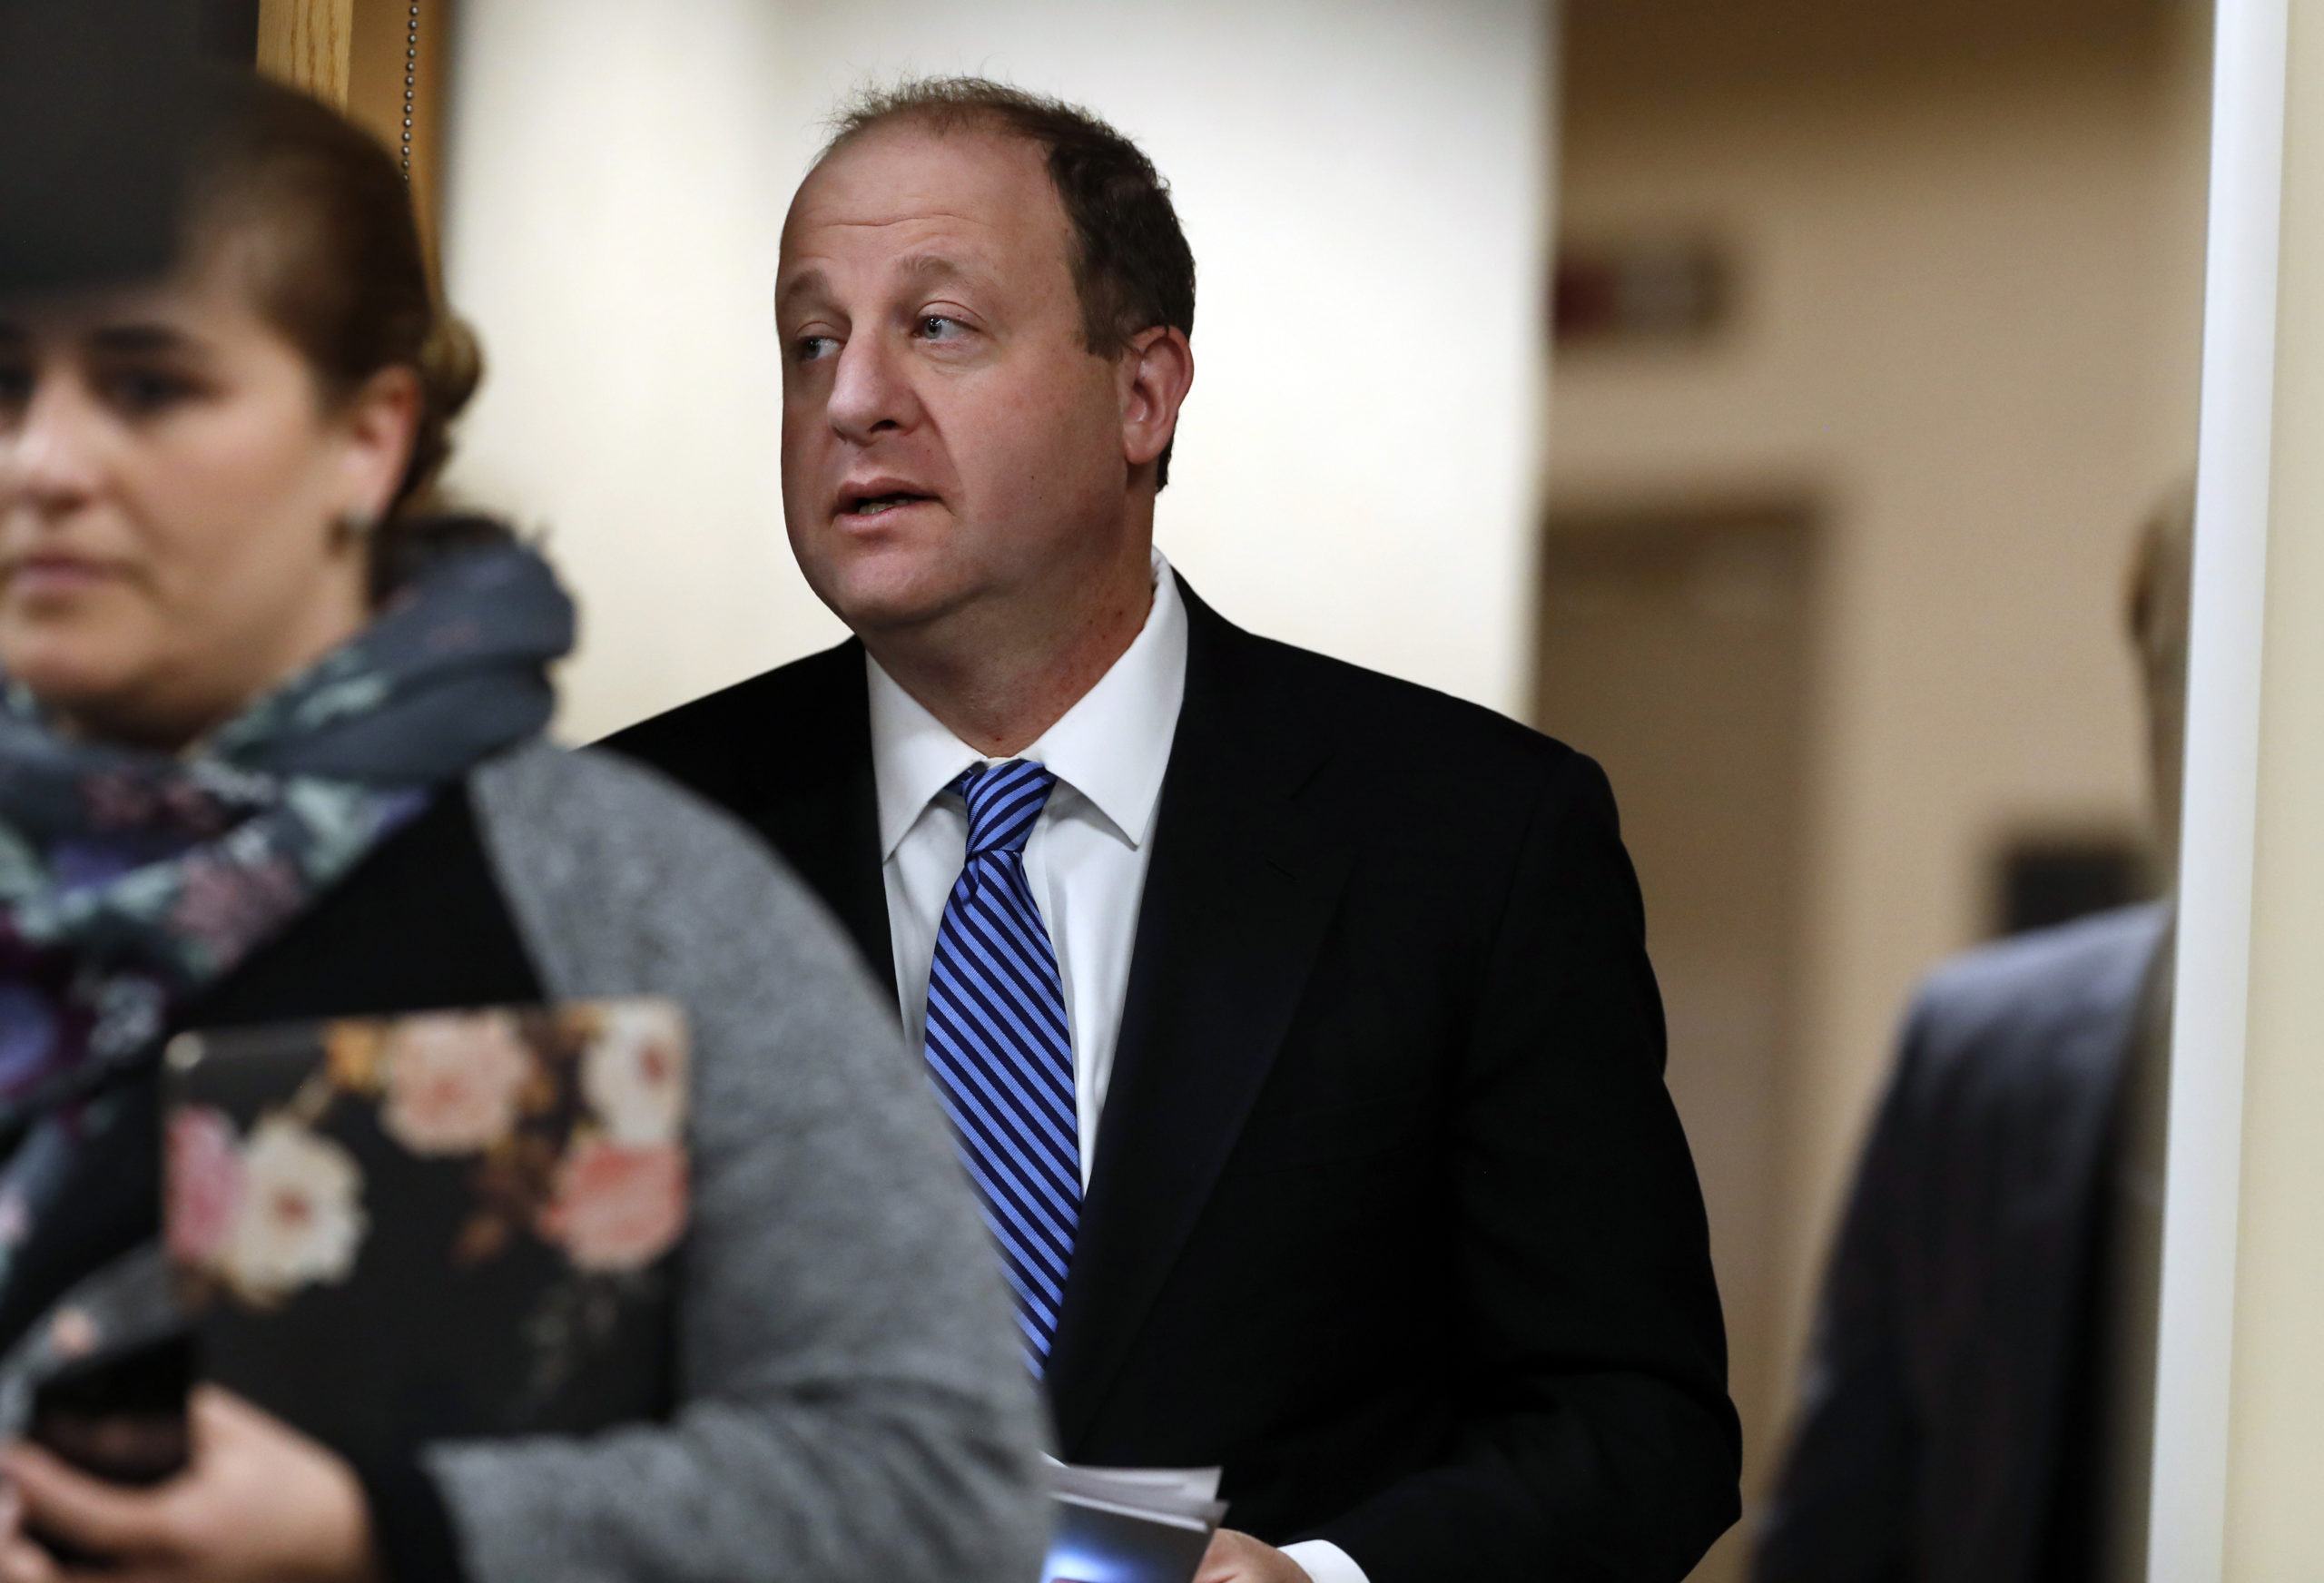 Colorado Governor Jared Polis enters a news conference as a statewide stay-at-home order remains in effect in an effort to reduce the spread of COVID-19, Wednesday, April 1, 2020, in Centennial, Colo.